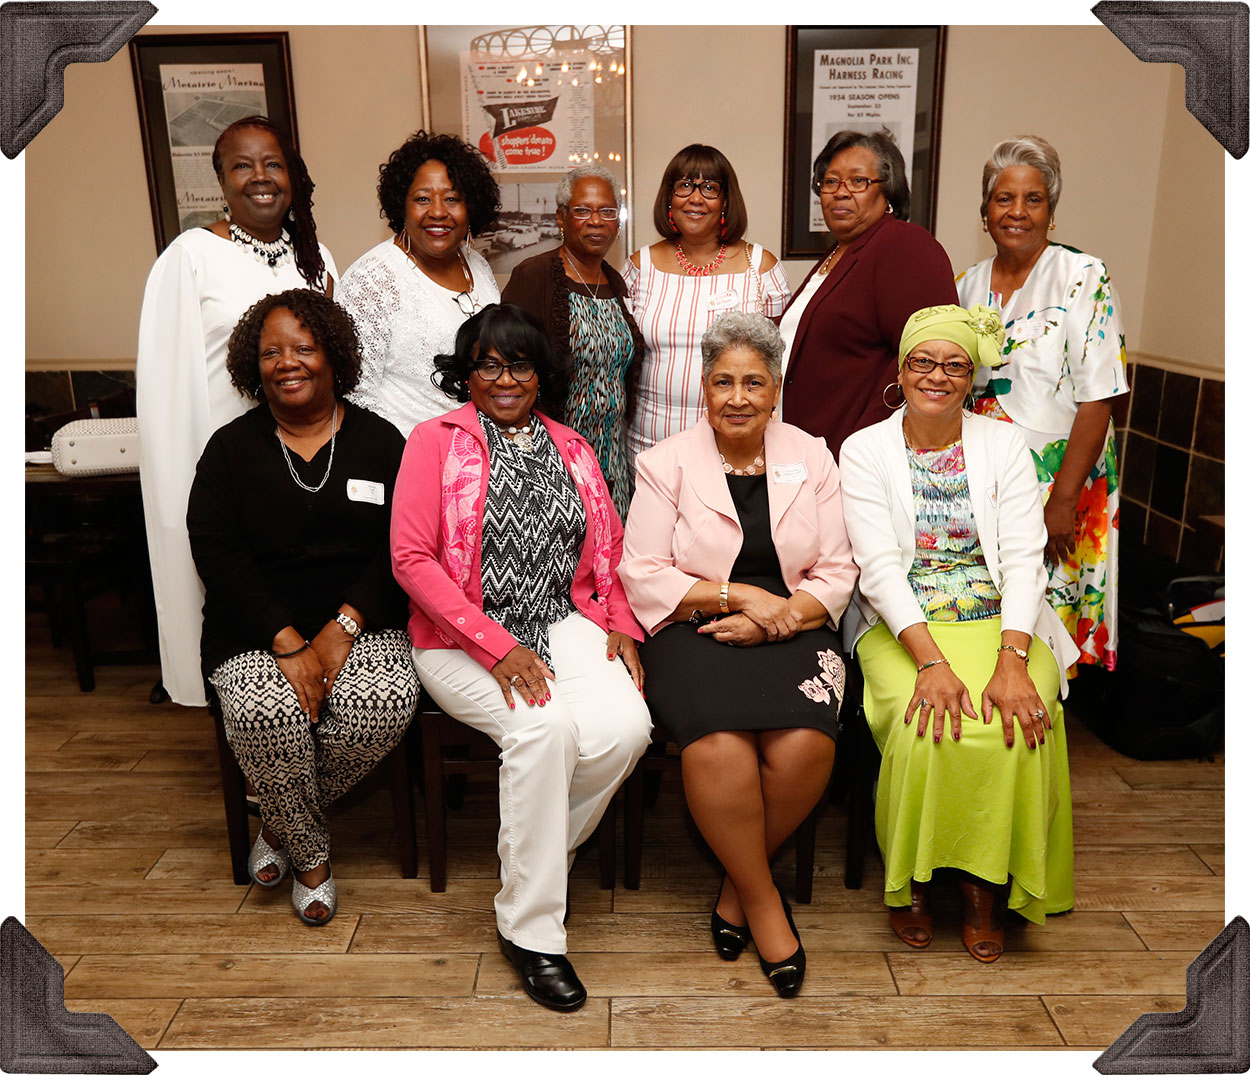 Class of '70-Standing: Hilda M. Smith, Connie Payton-Nevels, Gail Collins, Brenda Wilson, Dorothy Weathersby, L.Vee Berry-Seated: Merial Hall, Therse White-Sears, Lorraine Washington and Joyce Nu'Man